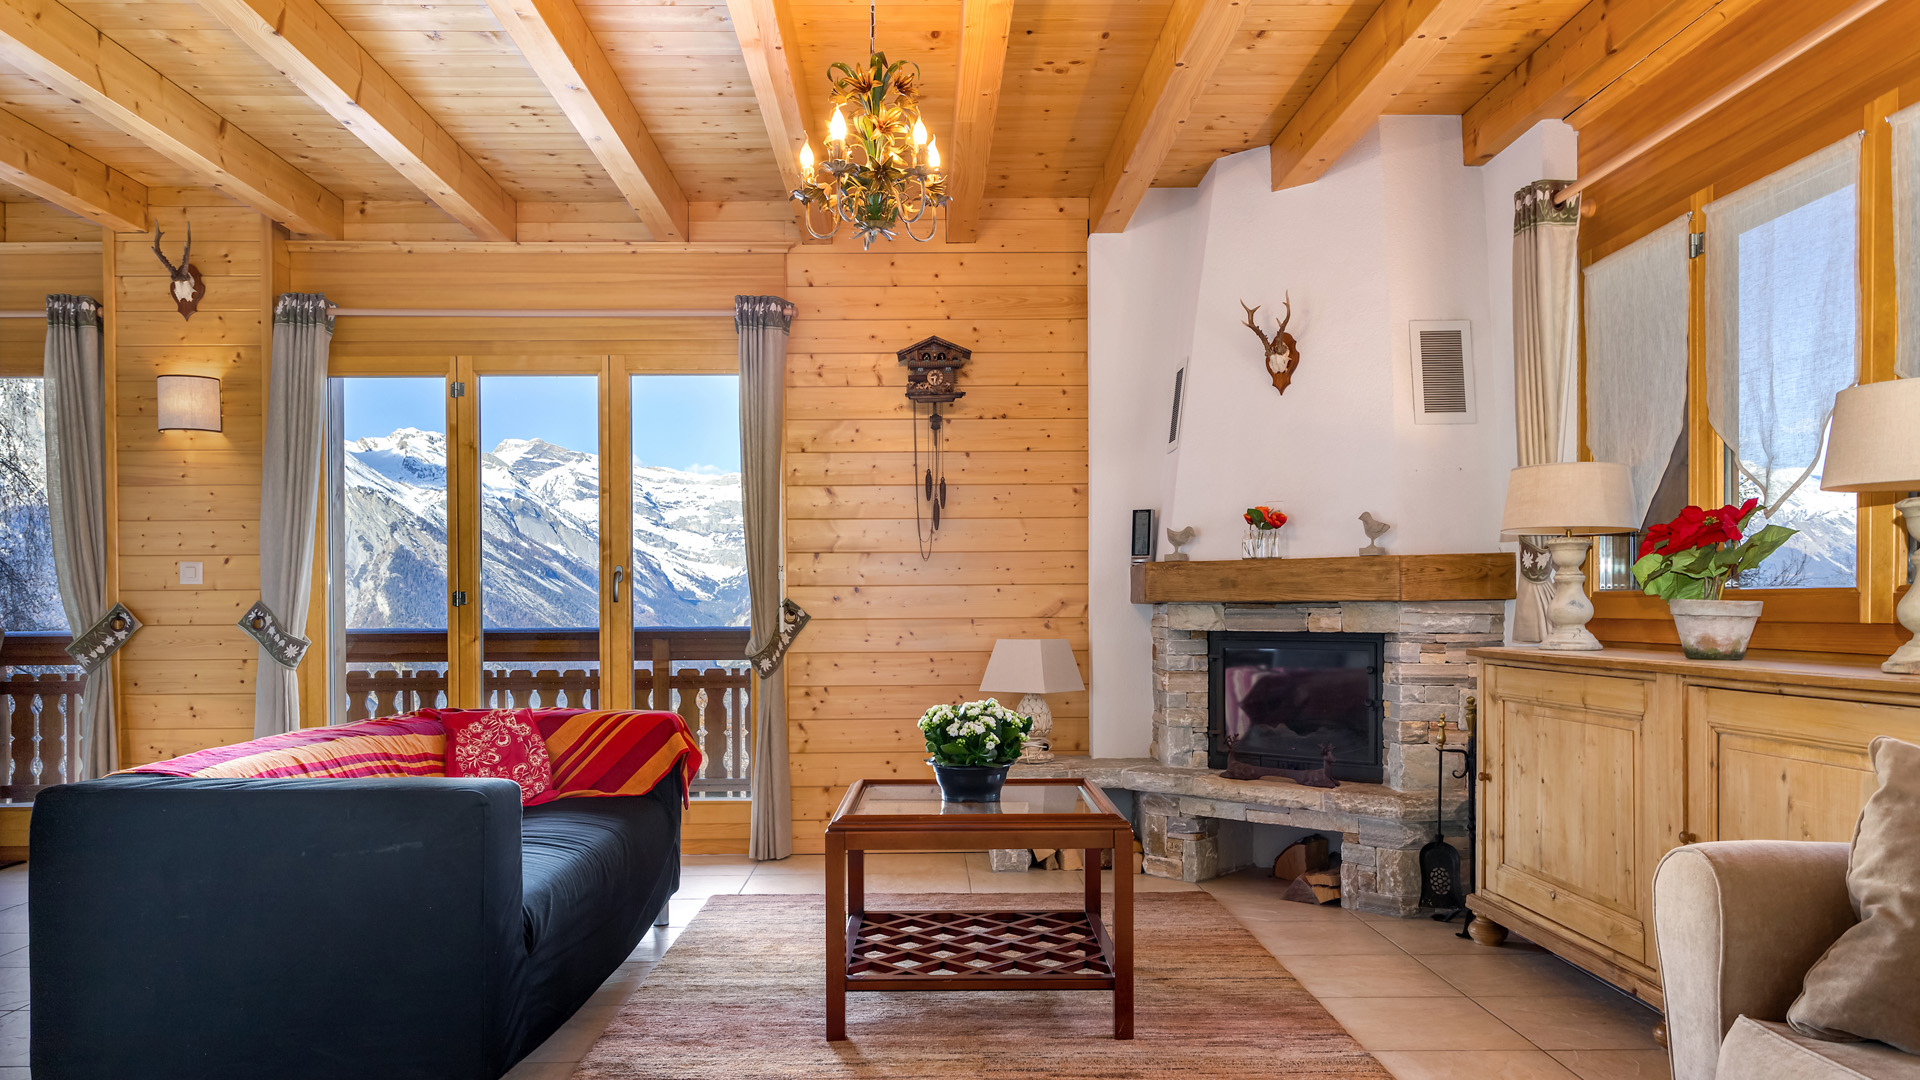 Chalet Papillon Chalet, Switzerland